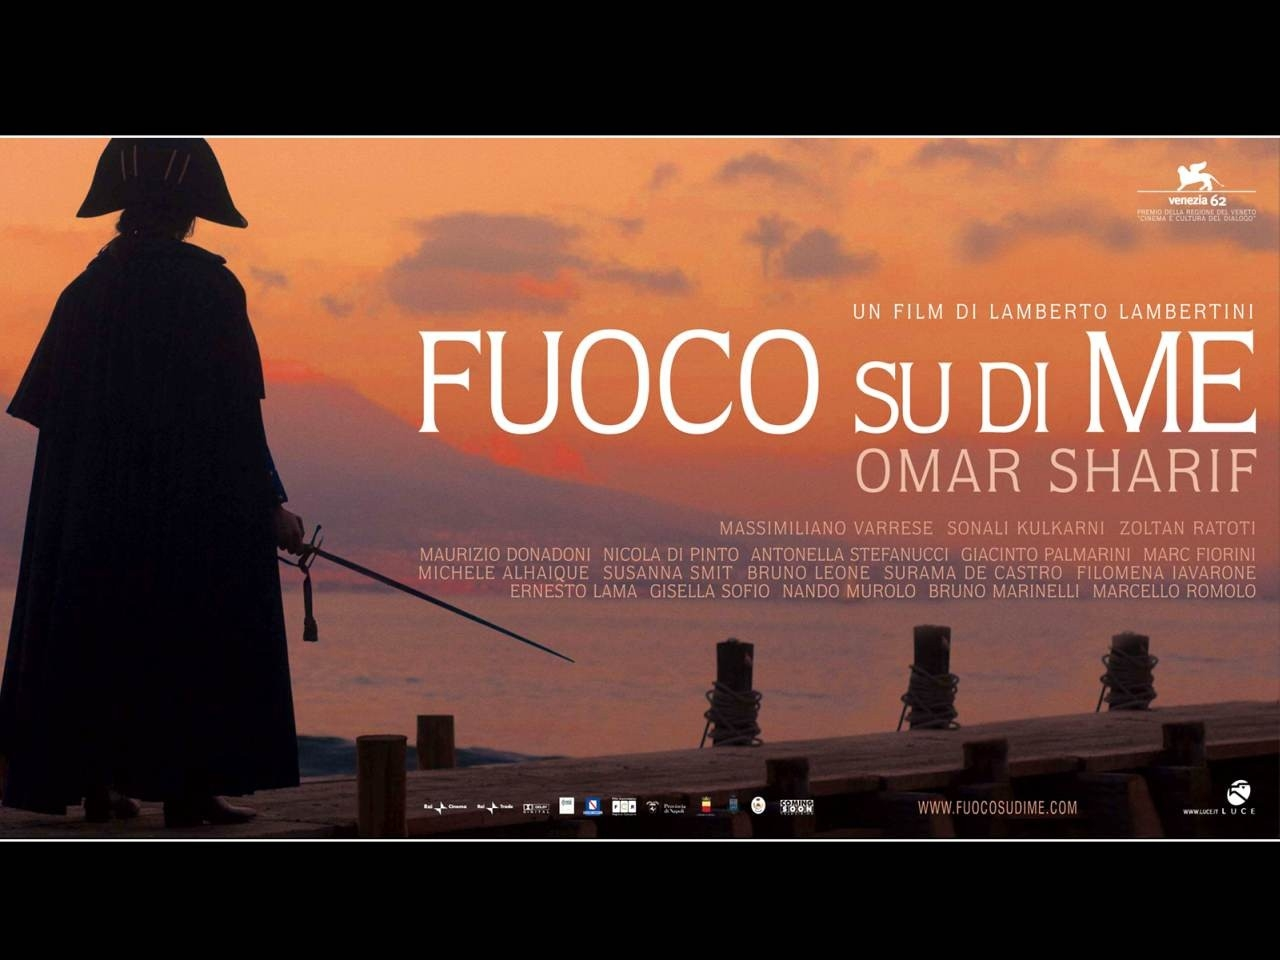 Wallpaper del film Fuoco su di me